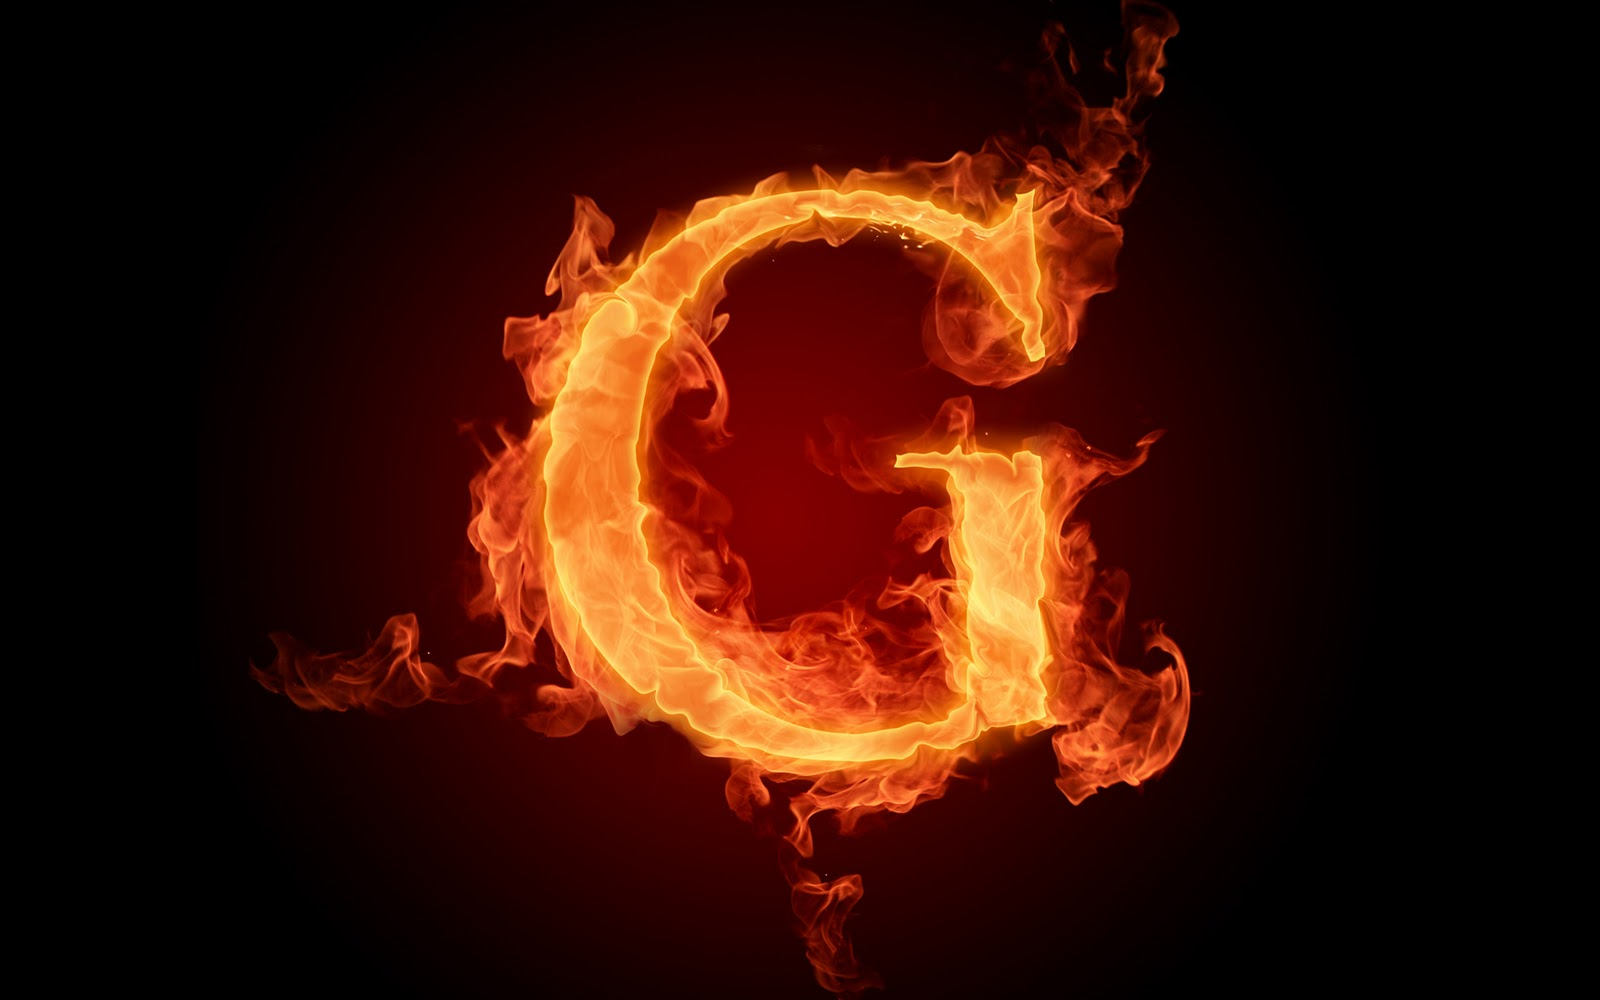 http://1.bp.blogspot.com/-Y5ECOAeKgC4/TrlH9BvW2tI/AAAAAAAAKiw/cgwb28GRH1s/s1600/the-fiery-english-alphabet-picture-g_1920x1200_73621.jpg